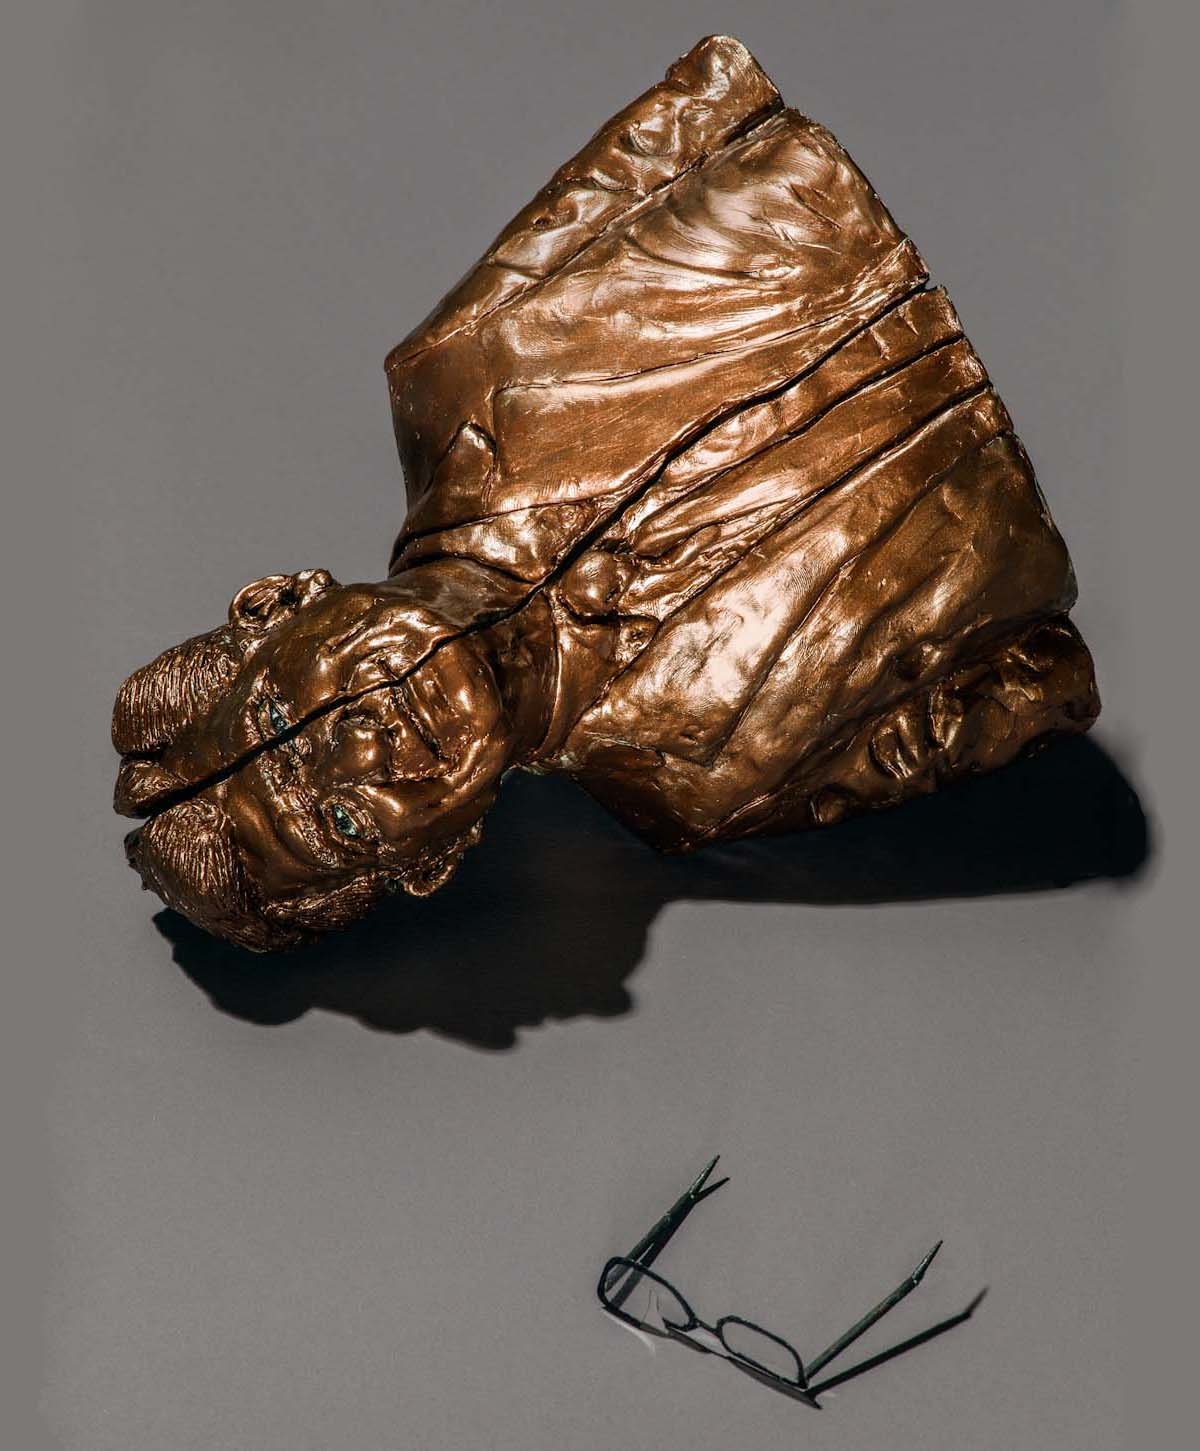 Joe Paterno, in gold and sliced ... fallen (photo by Grant Cornett for The New Yorker)